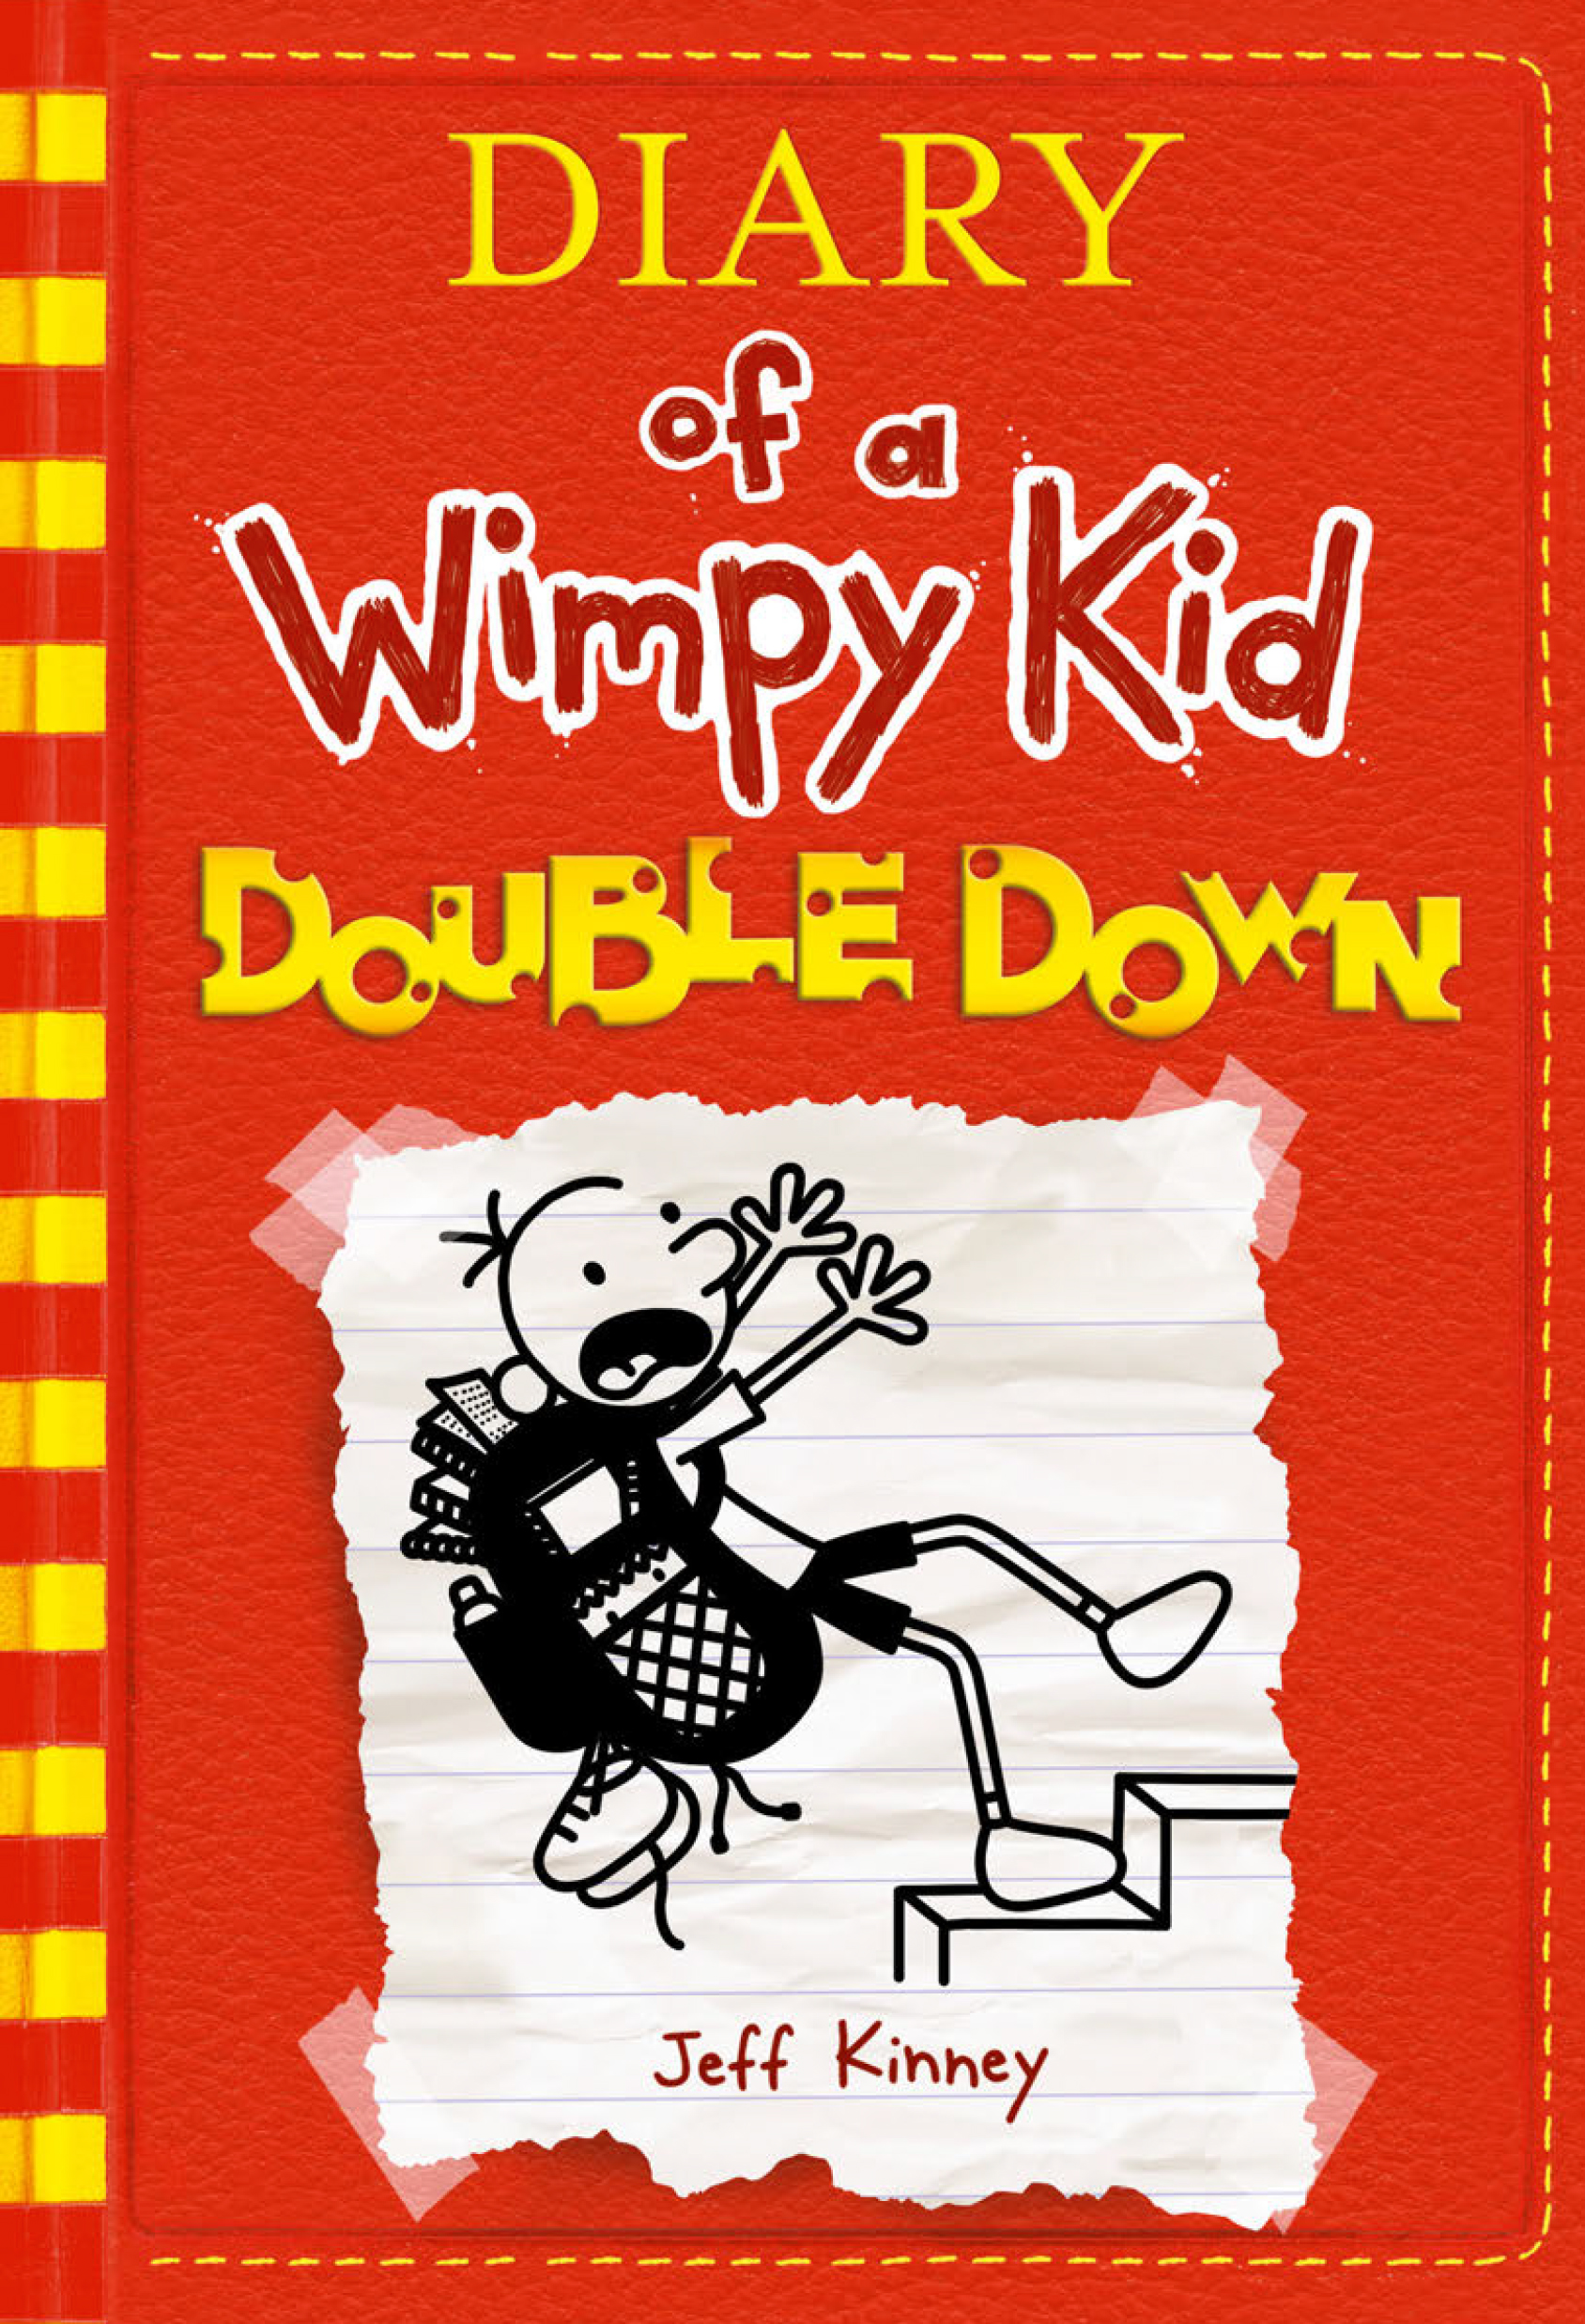 Cover Image of Double Down (Diary of a Wimpy Kid #11)